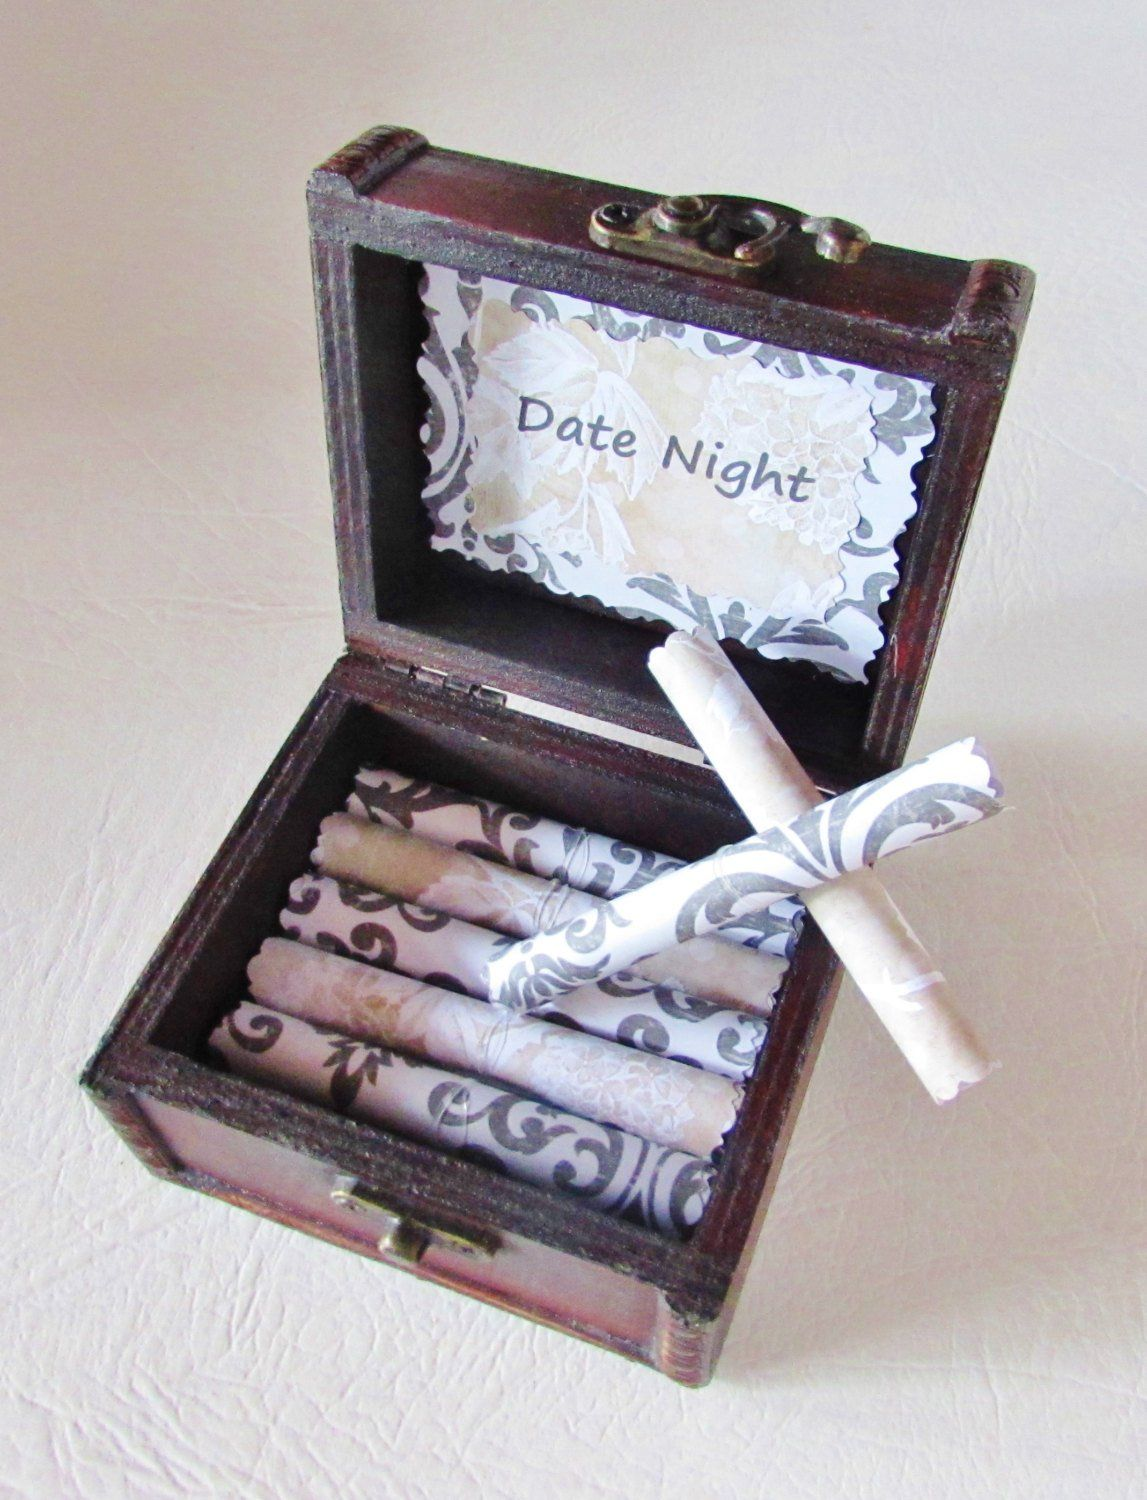 Girlfriend Birthday Gift Wife Date Night Scroll Box Valentine Idea Anniversary